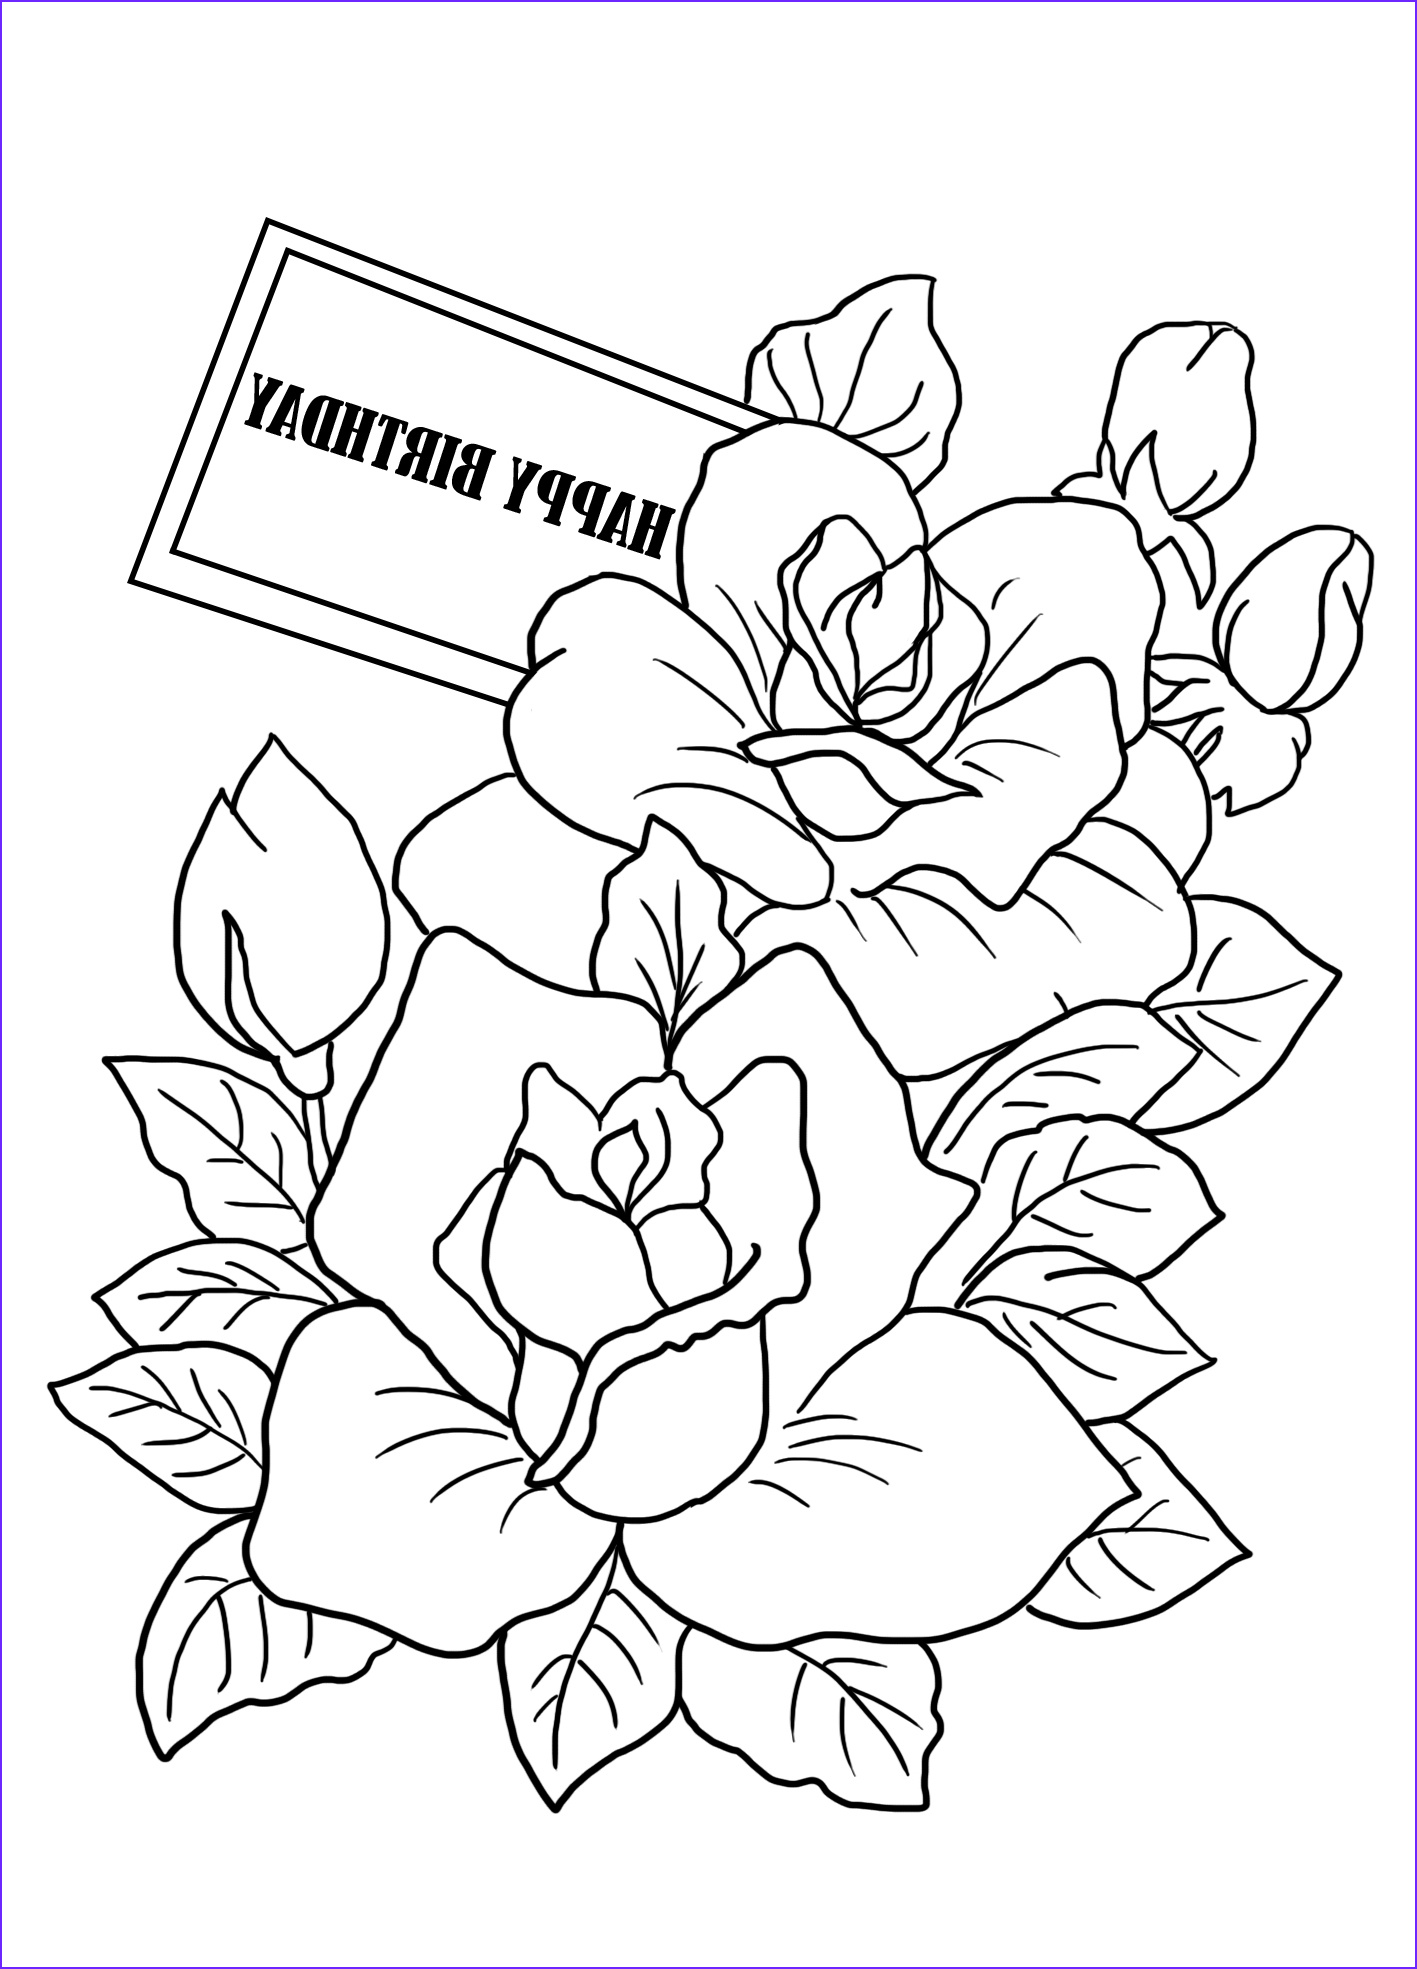 Birthday Coloring Pages Printable Inspirational Images Birthday Coloring Pages